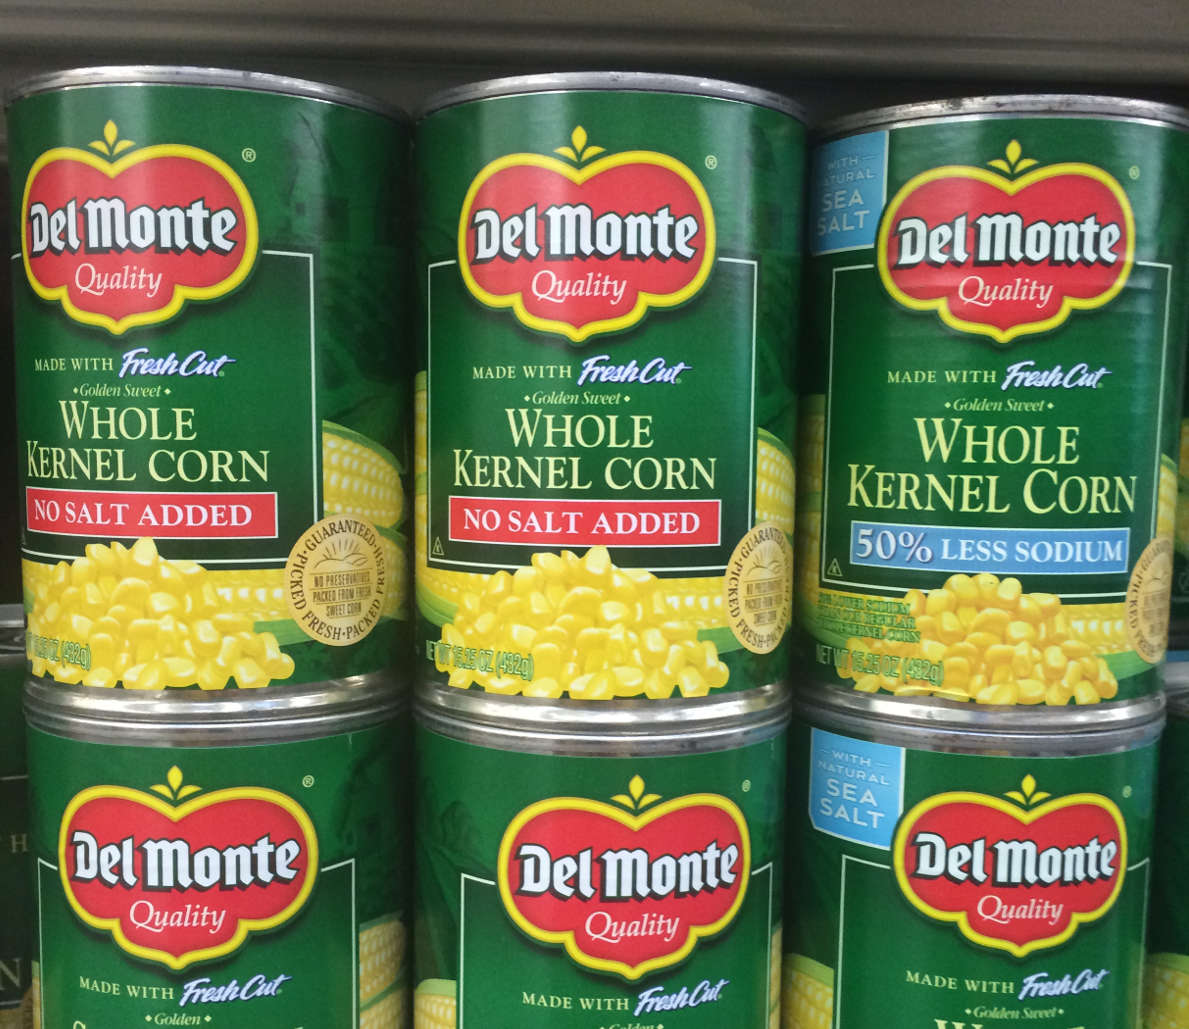 Del Monte sweetcorn canned products